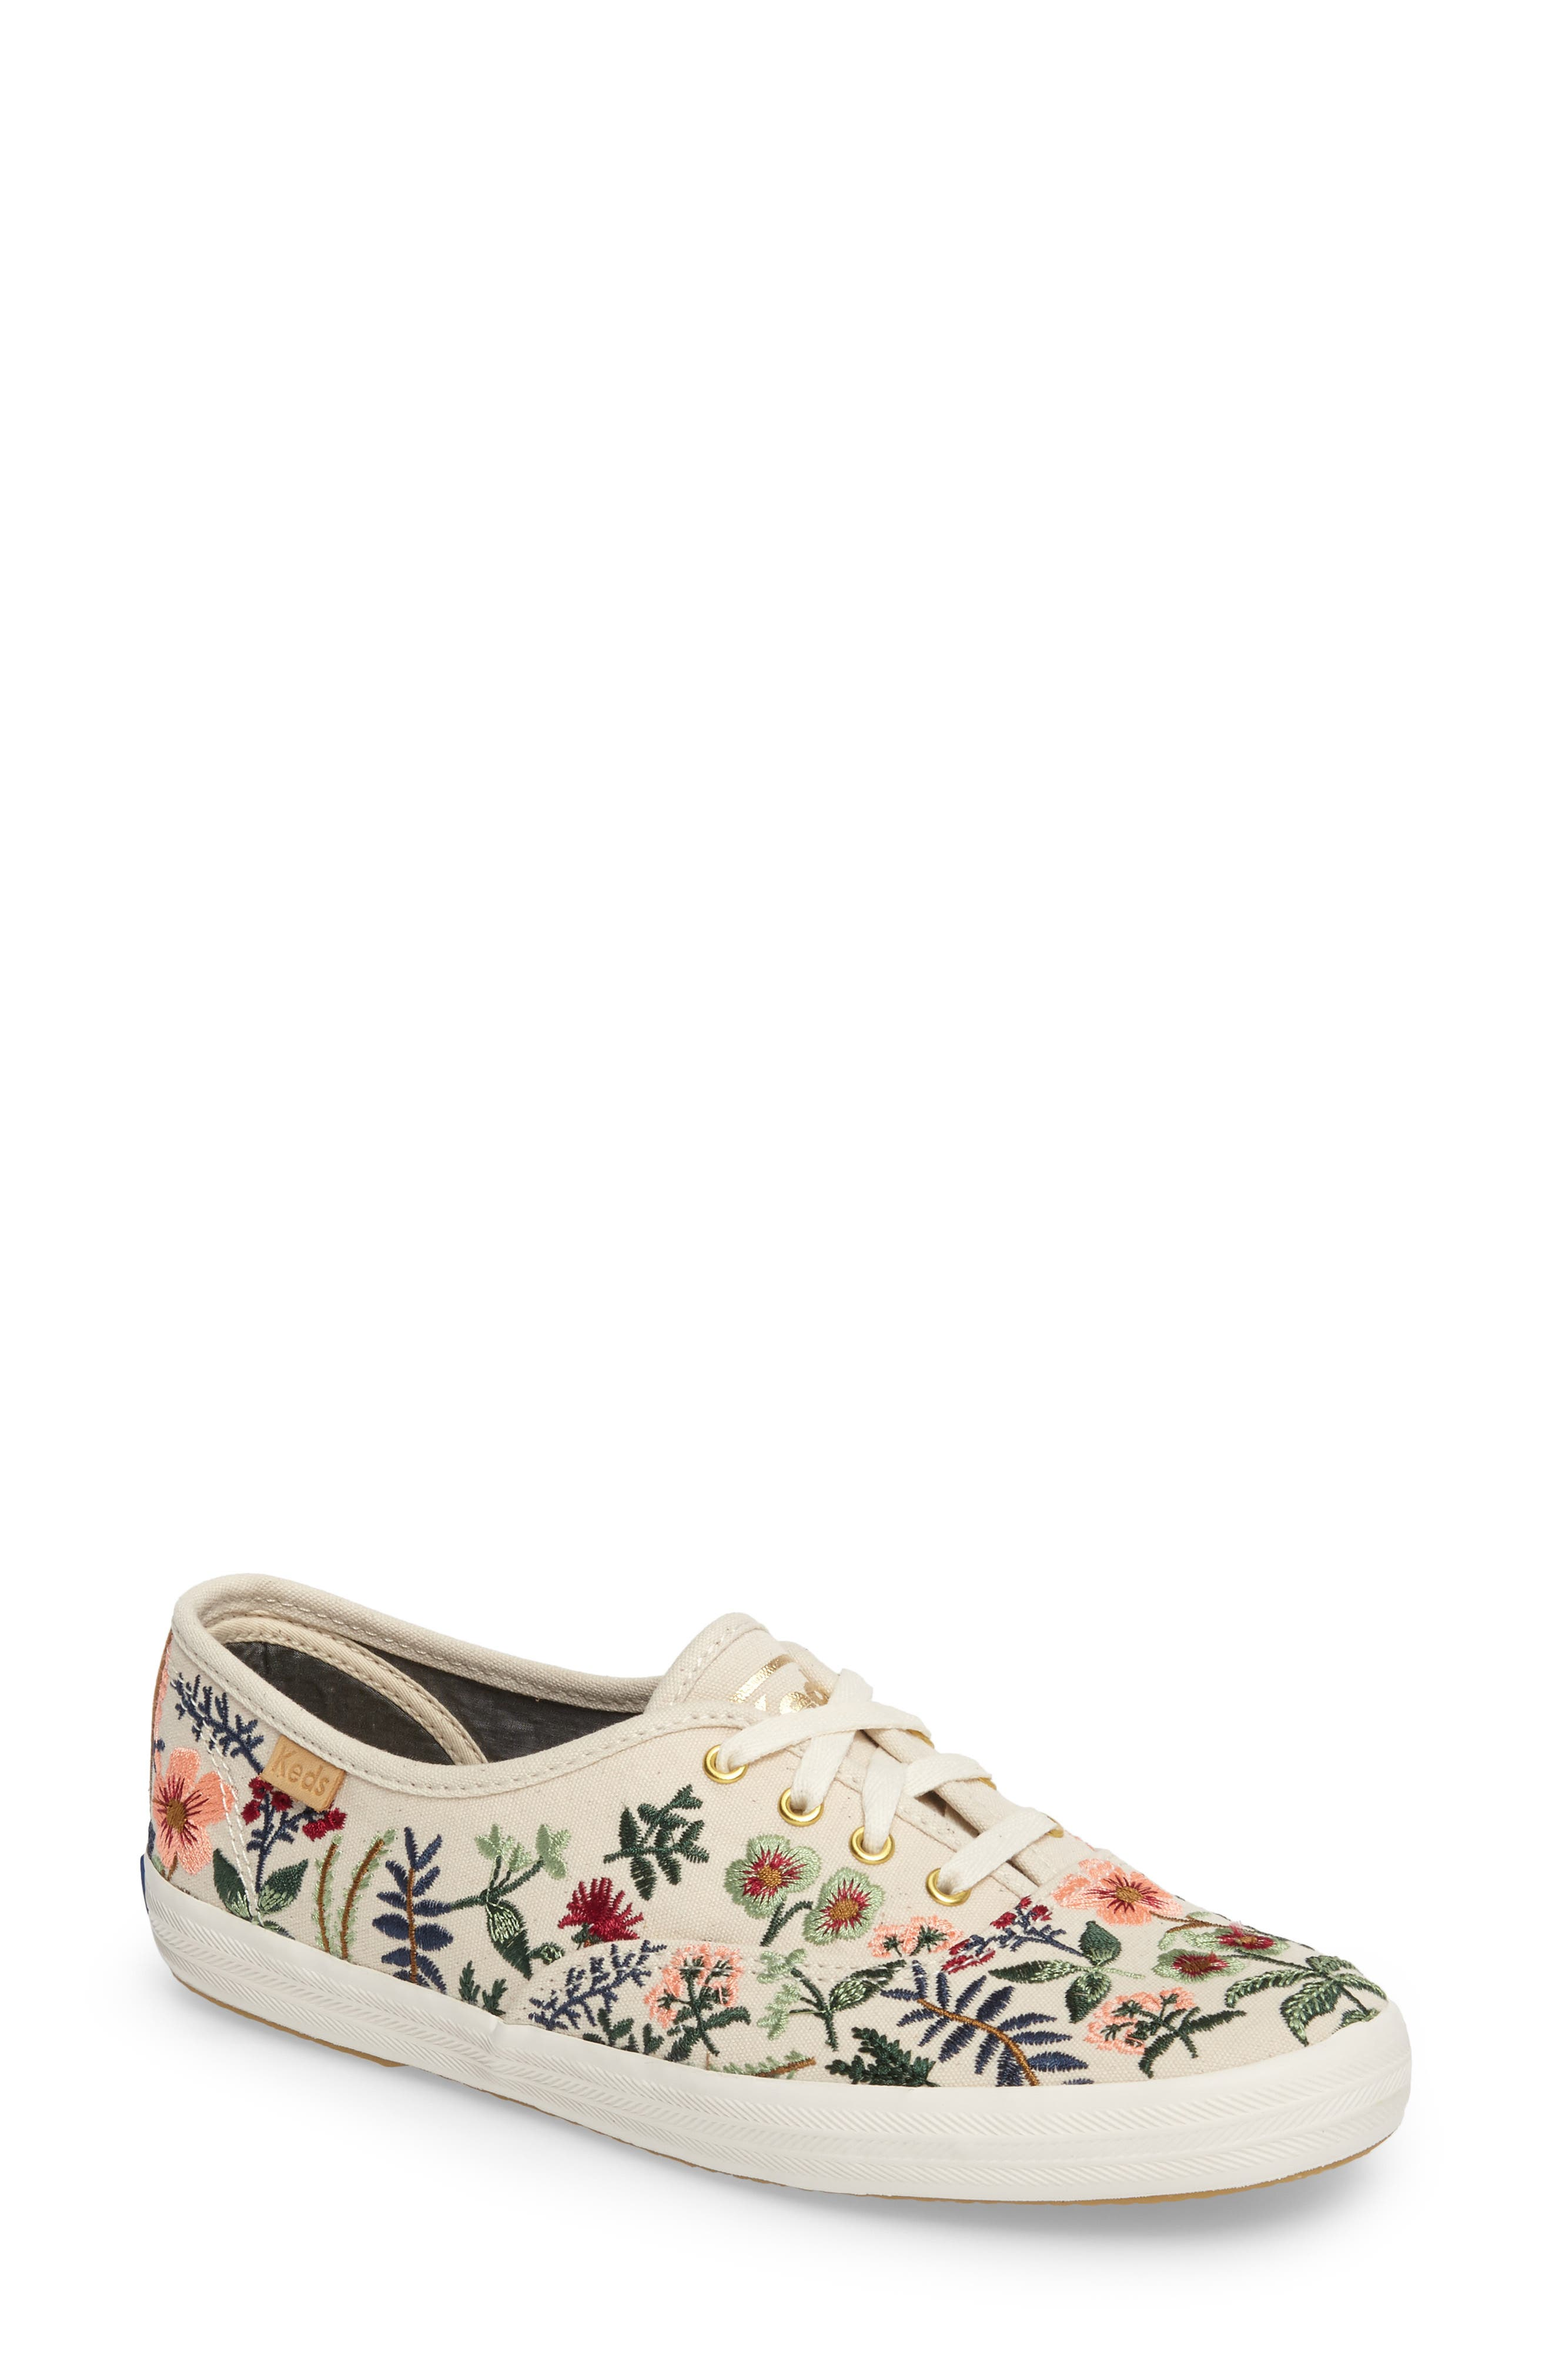 Alternate Image 1 Selected - Keds® x Rifle Paper Co. Herb Garden Embroidered Sneaker (Women)